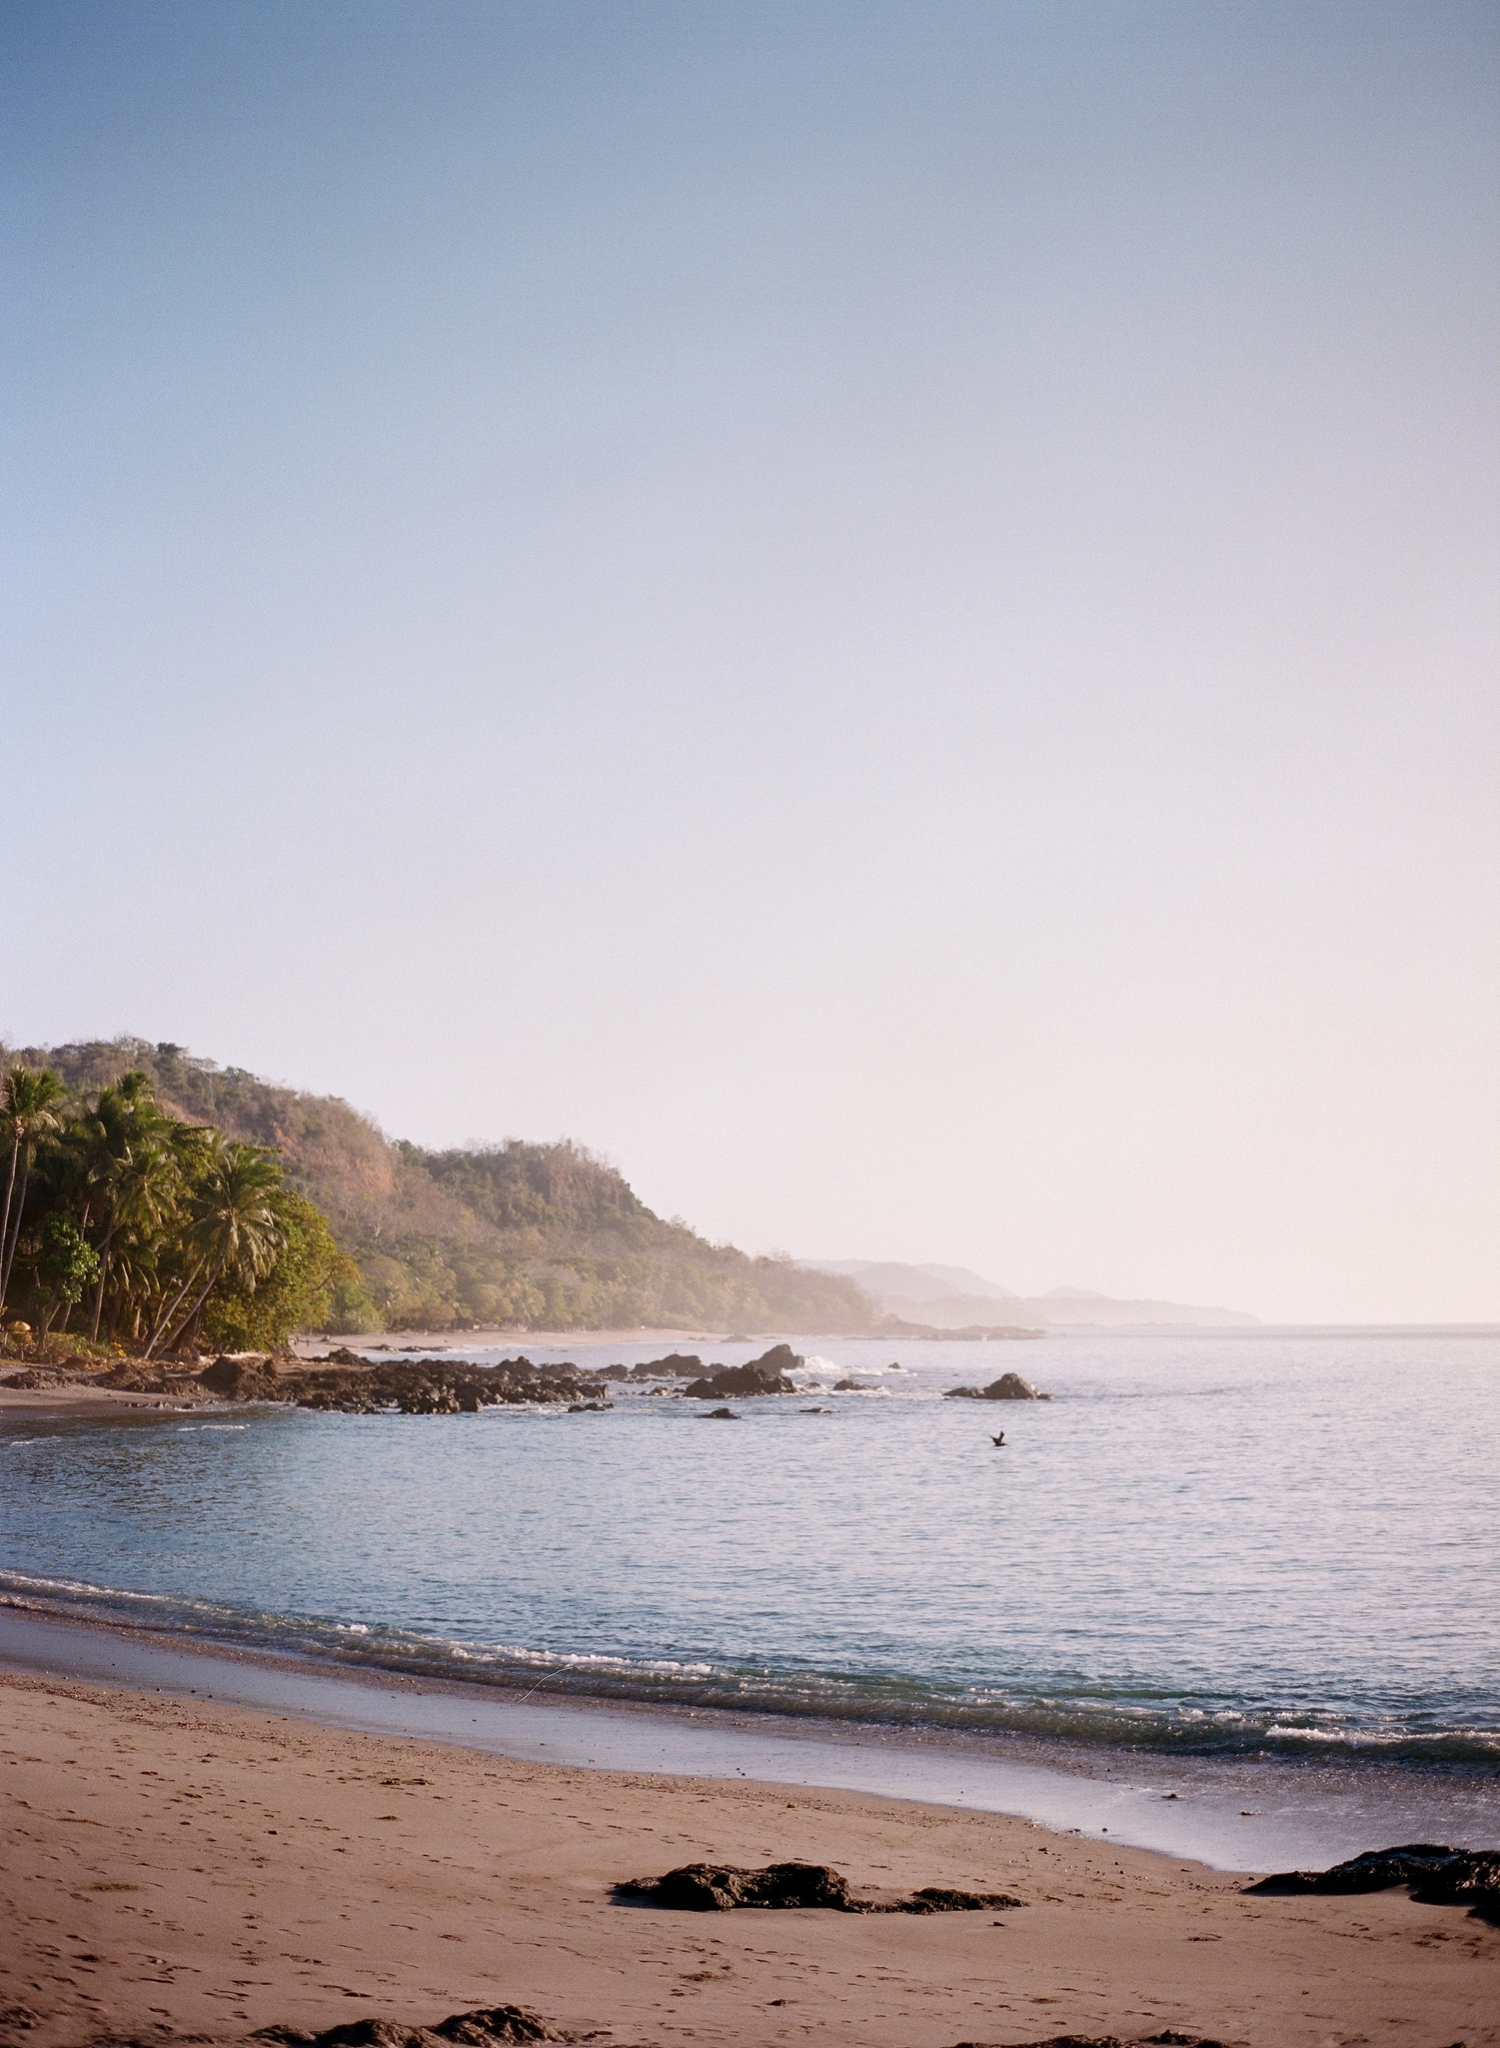 montezuma beach in costa rica, fine art film photos